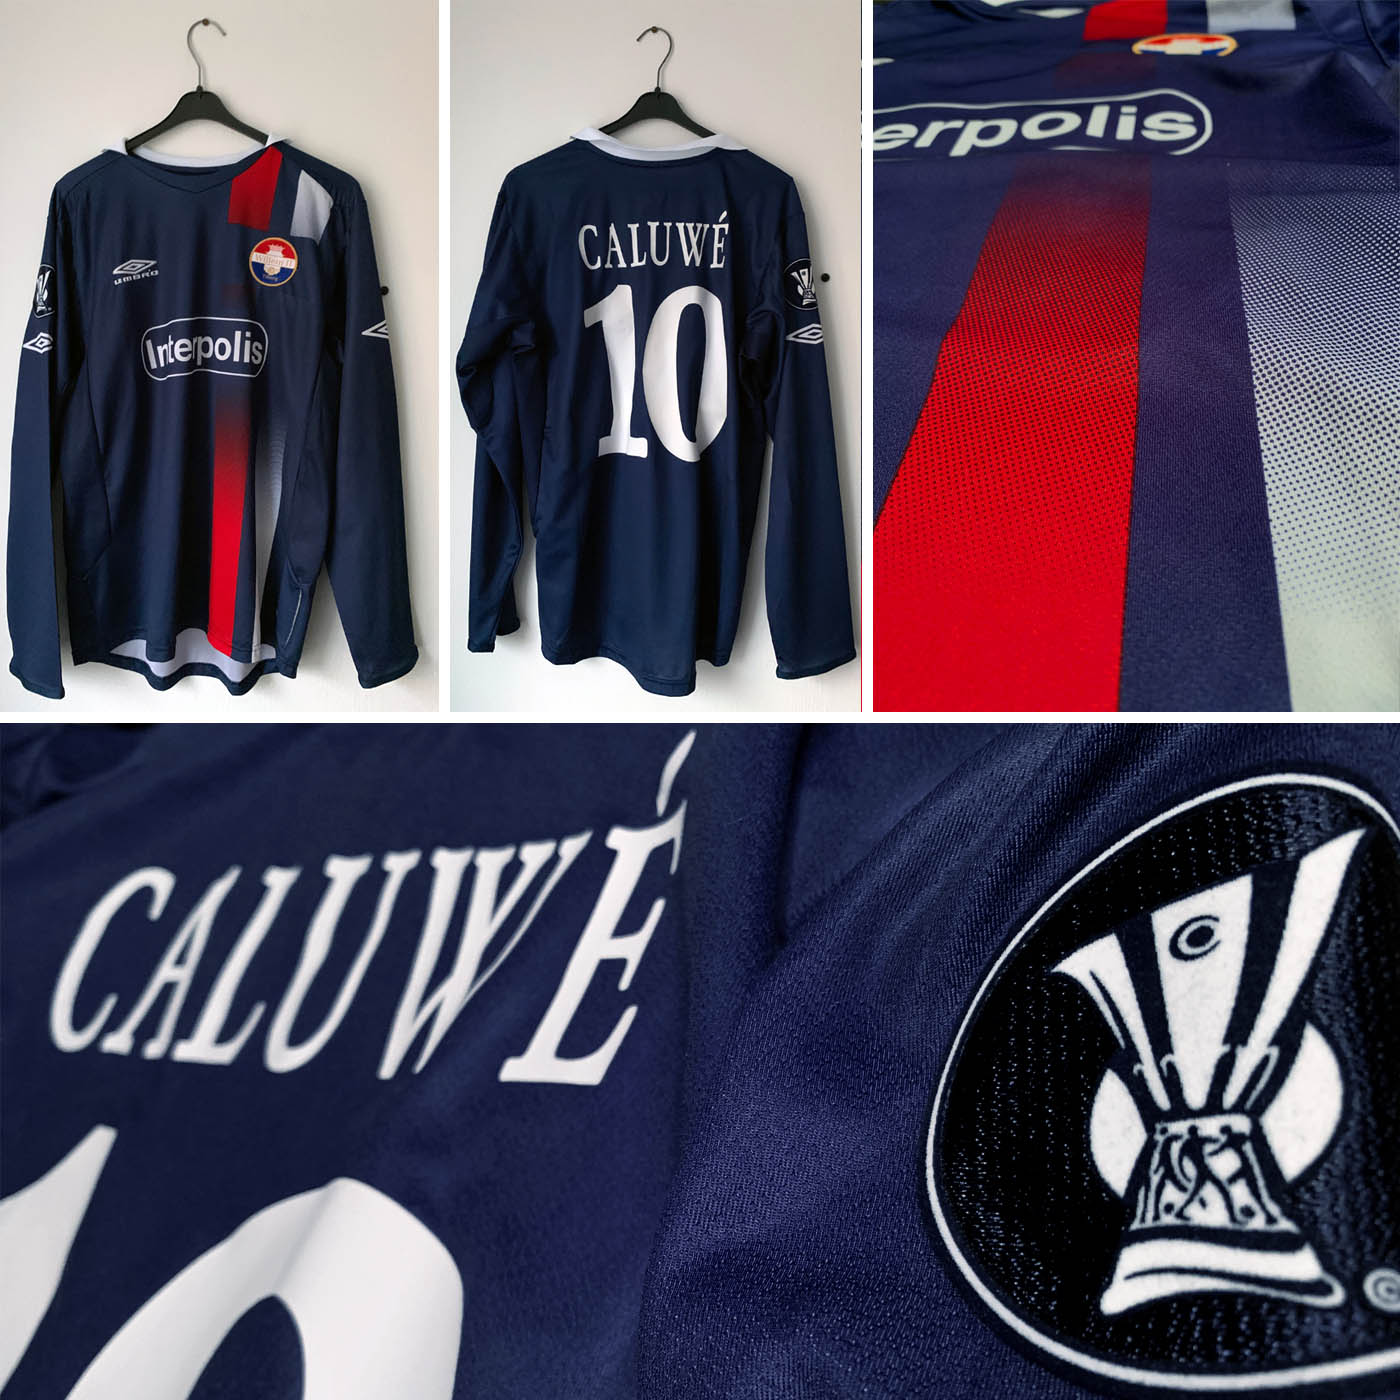 S01E02 - Tom Caluwé 2005/2006, 15 september 2005. UEFA Cup - AS Monaco - Willem II